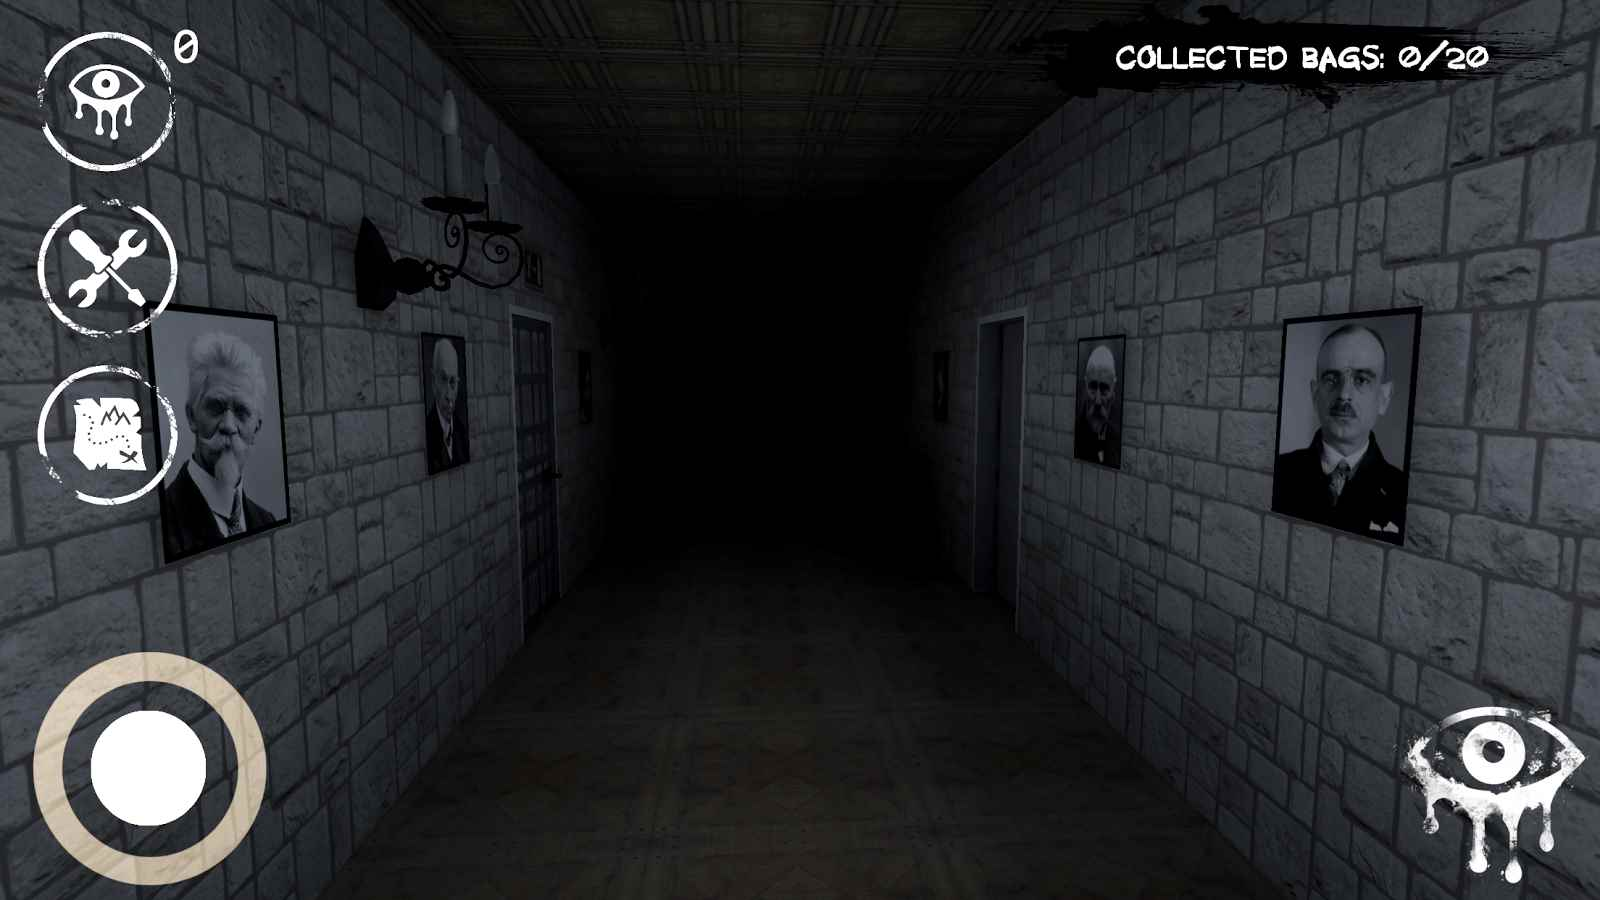 Eyes - The Horror Game v5.4.2 Mod apk - ANDROID GAME MOD